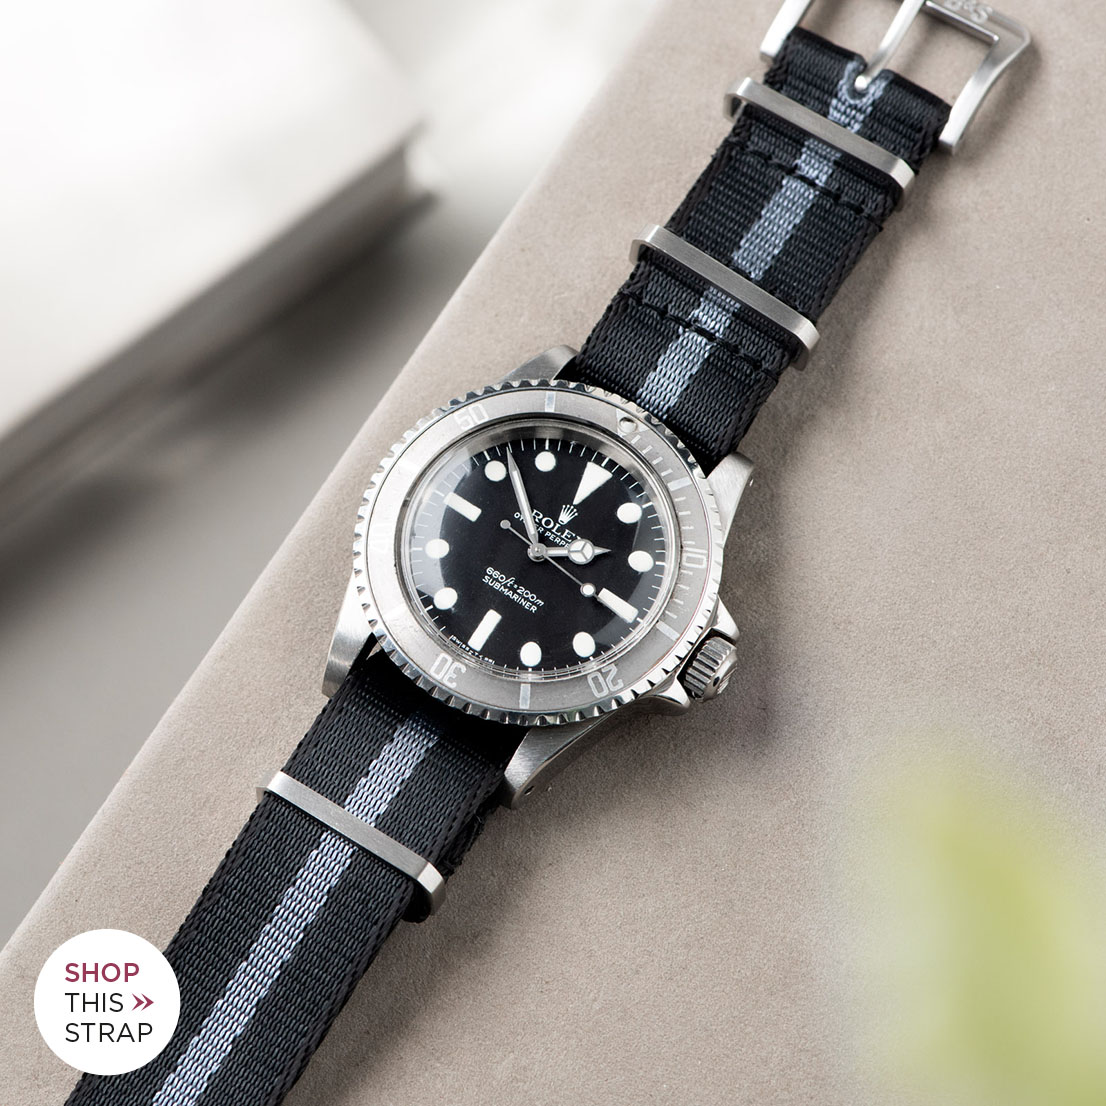 Bulang and Sons_Strap Guide_Rolex Submariner 5513 Faded_DELUXE NYLON NATO WATCH STRAP BLACK ONE STRIPE GREY